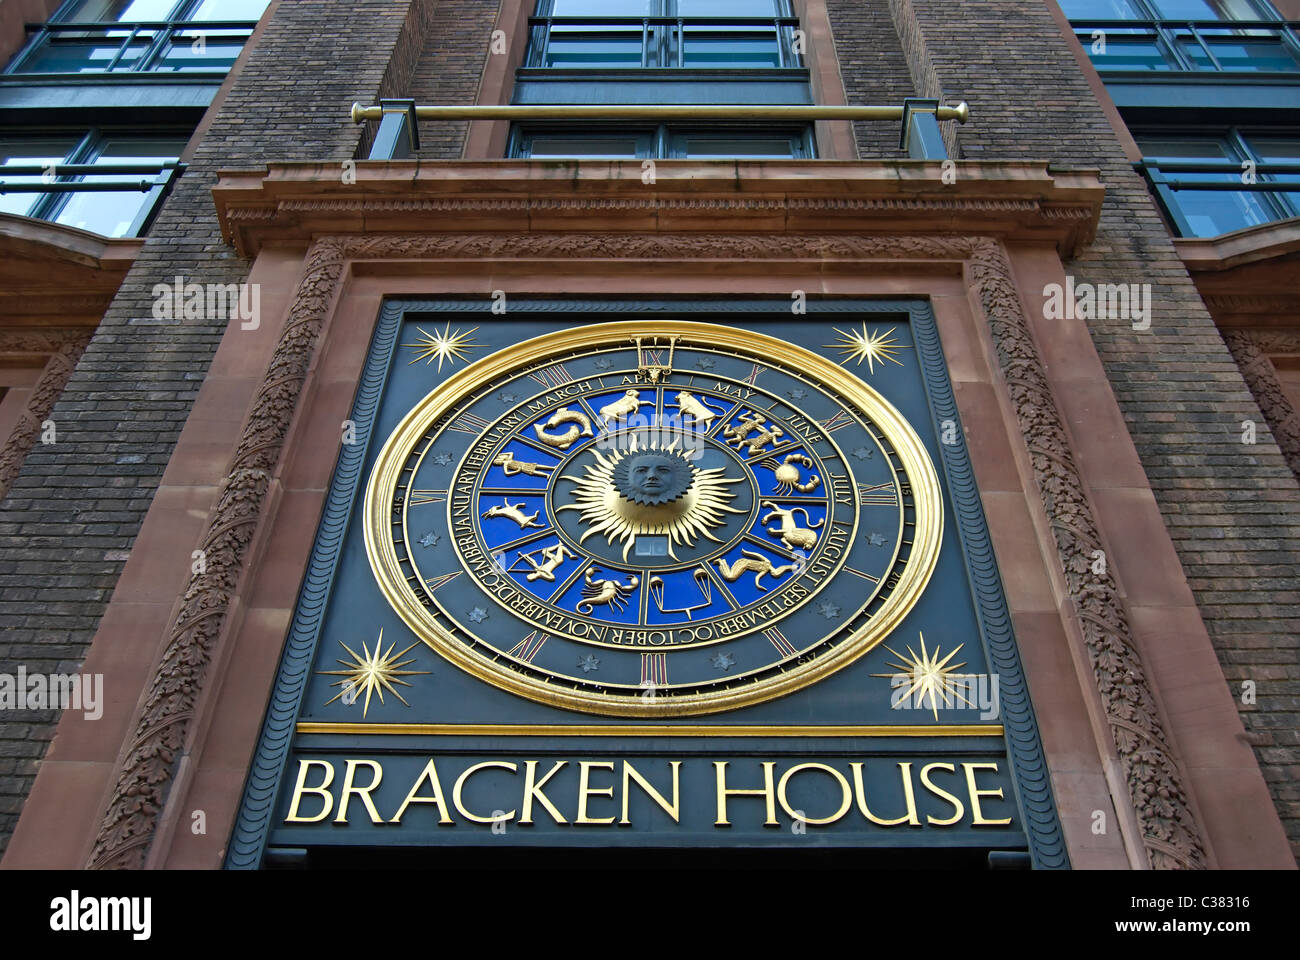 astrological clock above an entrance to bracken house, former home of the financial times, in cannon street, london, - Stock Image